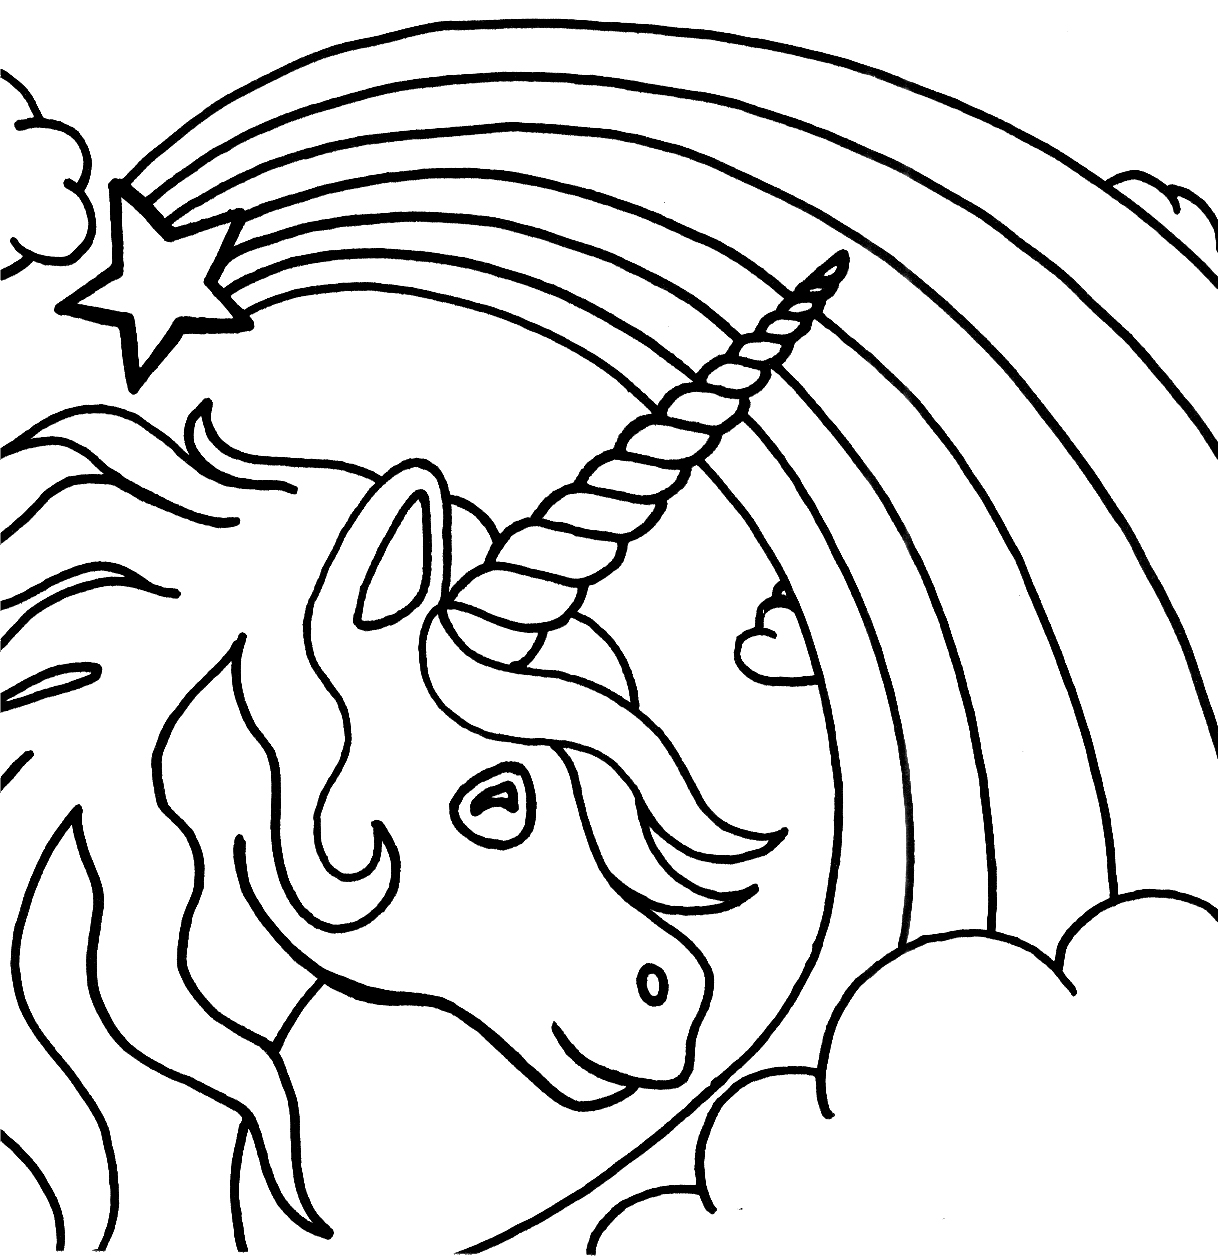 unicorn coloring pages printables - photo#2